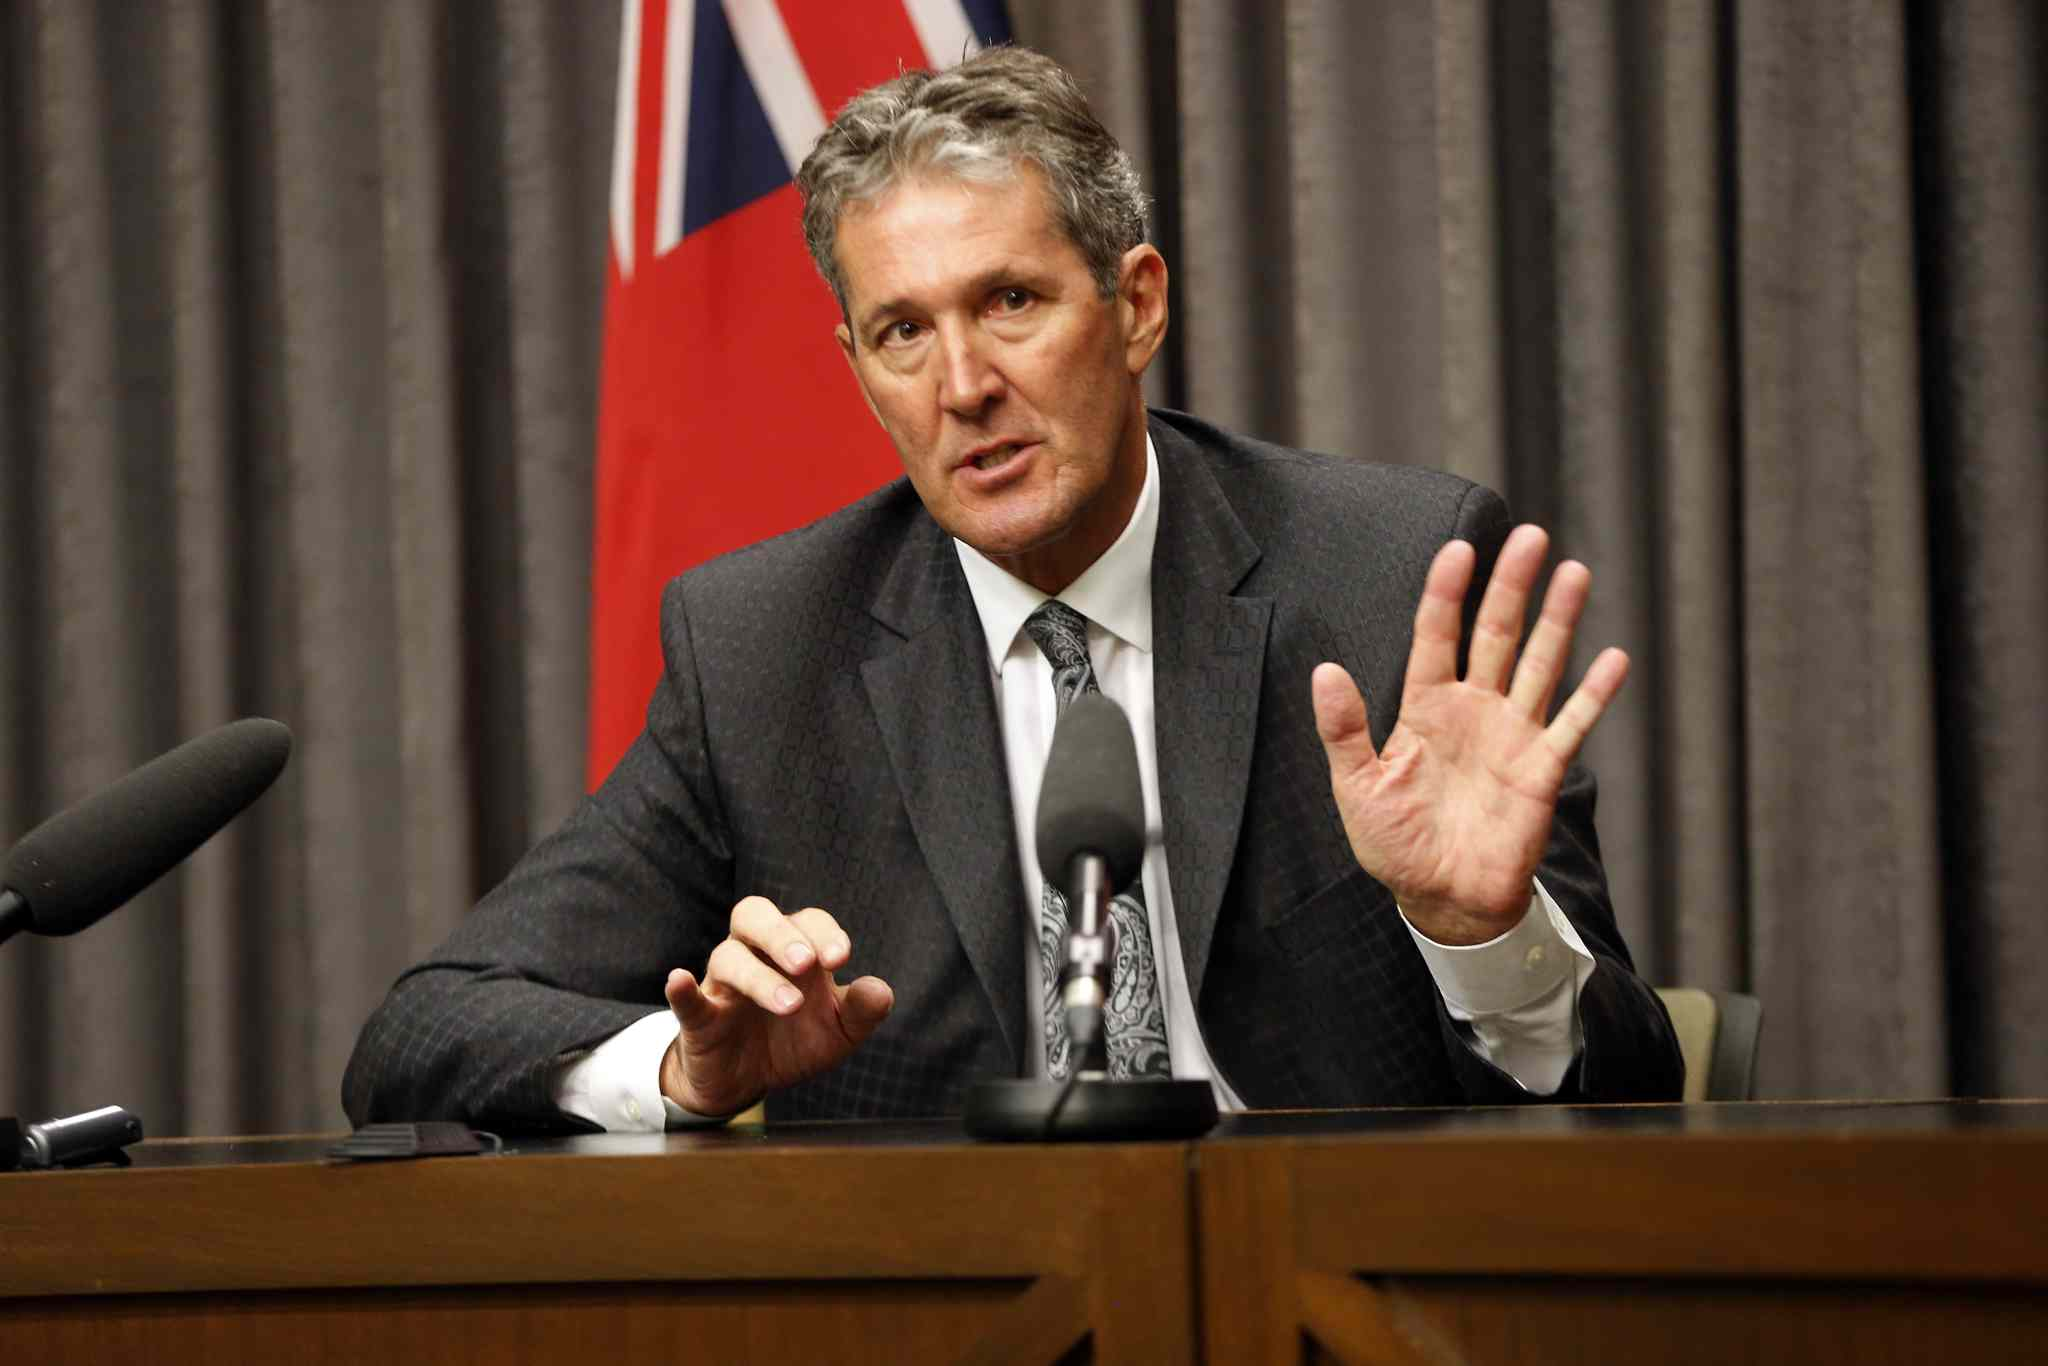 Brian Pallister said after last week's ruling he remains undecided on whether he will appeal.